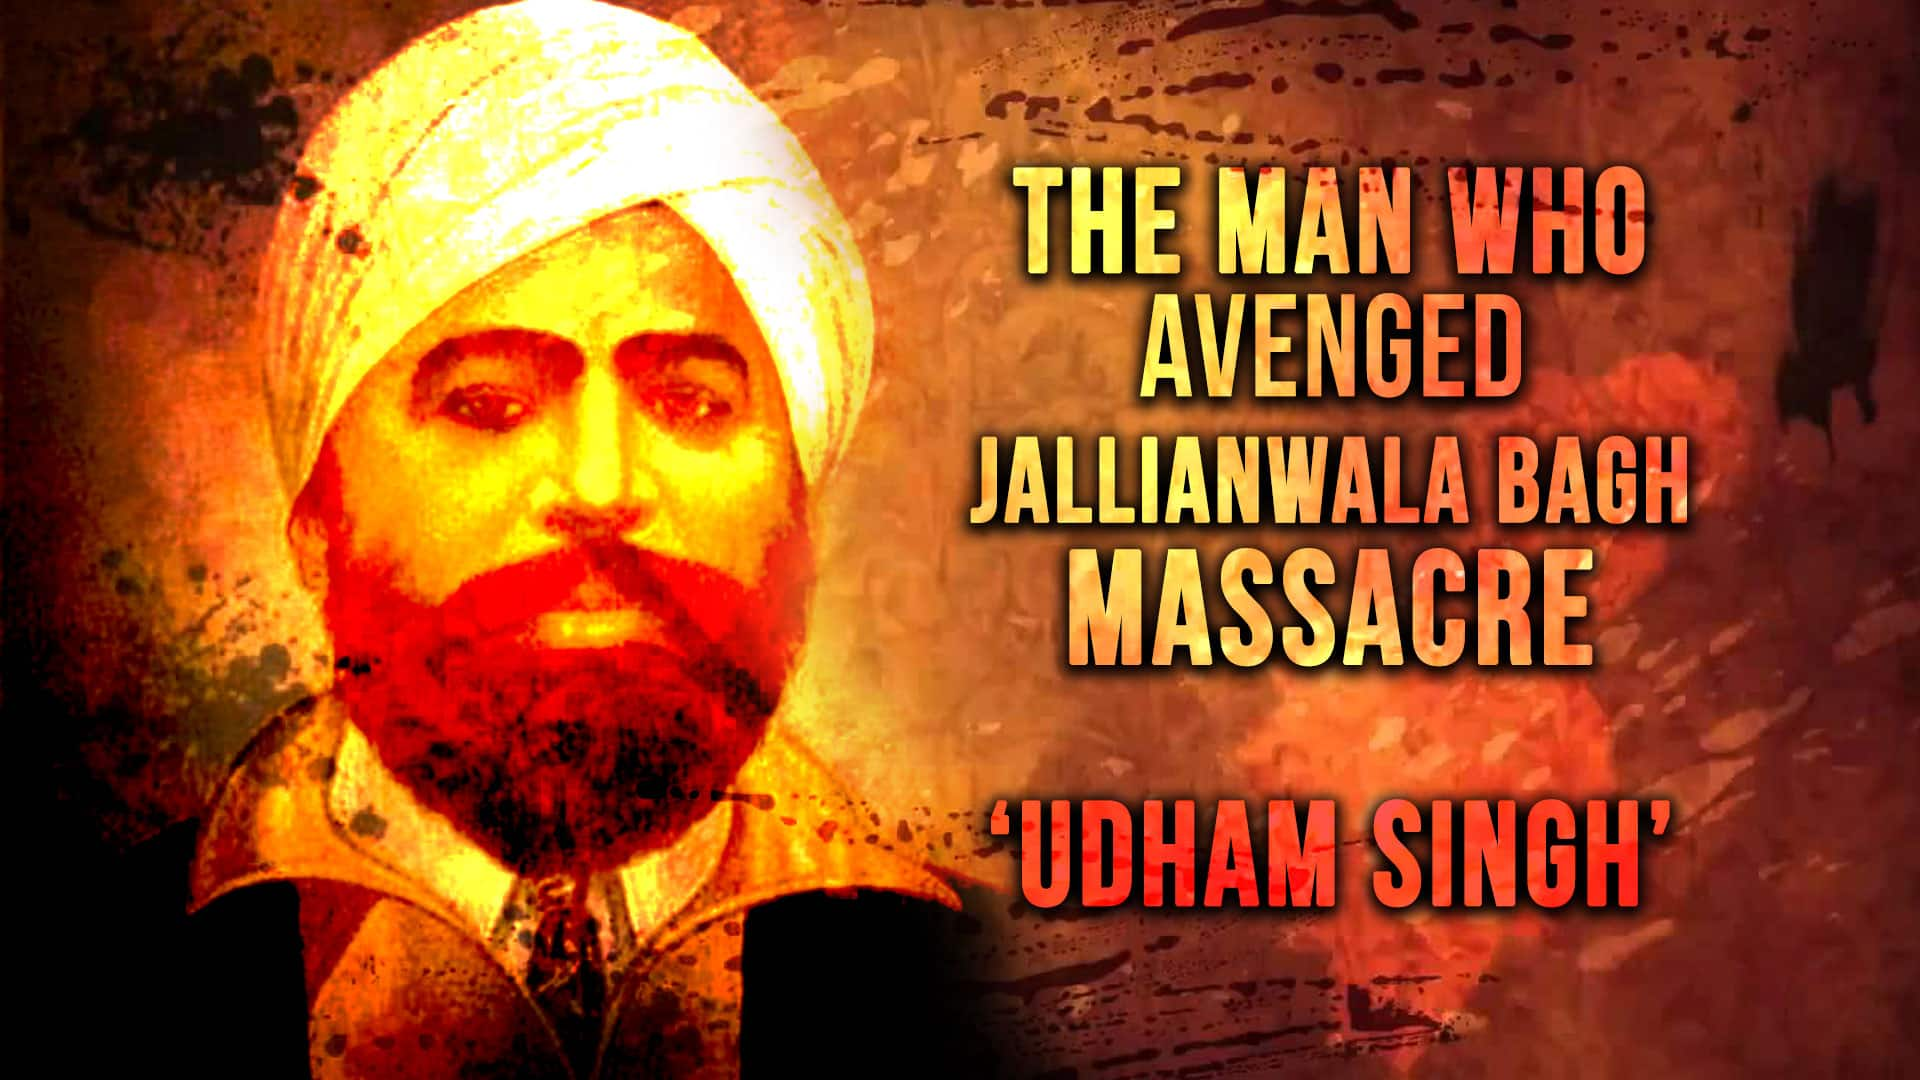 Nation's revenge: How Udham Singh tracked and shot butcher of Jallianwala Bagh